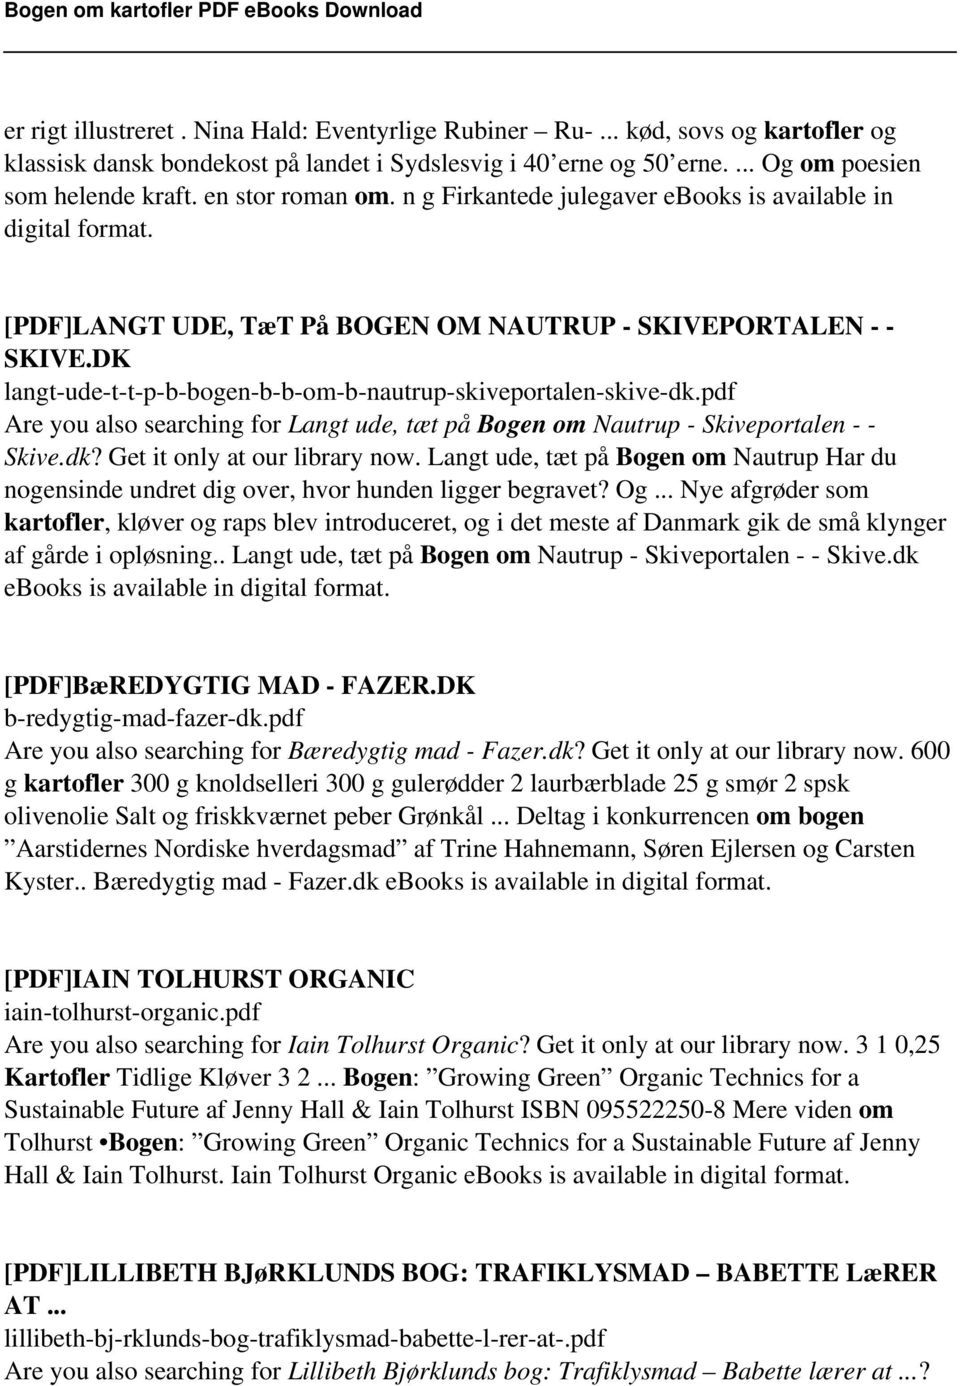 DK langt-ude-t-t-p-b-bogen-b-b-om-b-nautrup-skiveportalen-skive-dk.pdf Are you also searching for Langt ude, tæt på Bogen om Nautrup - Skiveportalen - - Skive.dk? Get it only at our library now.